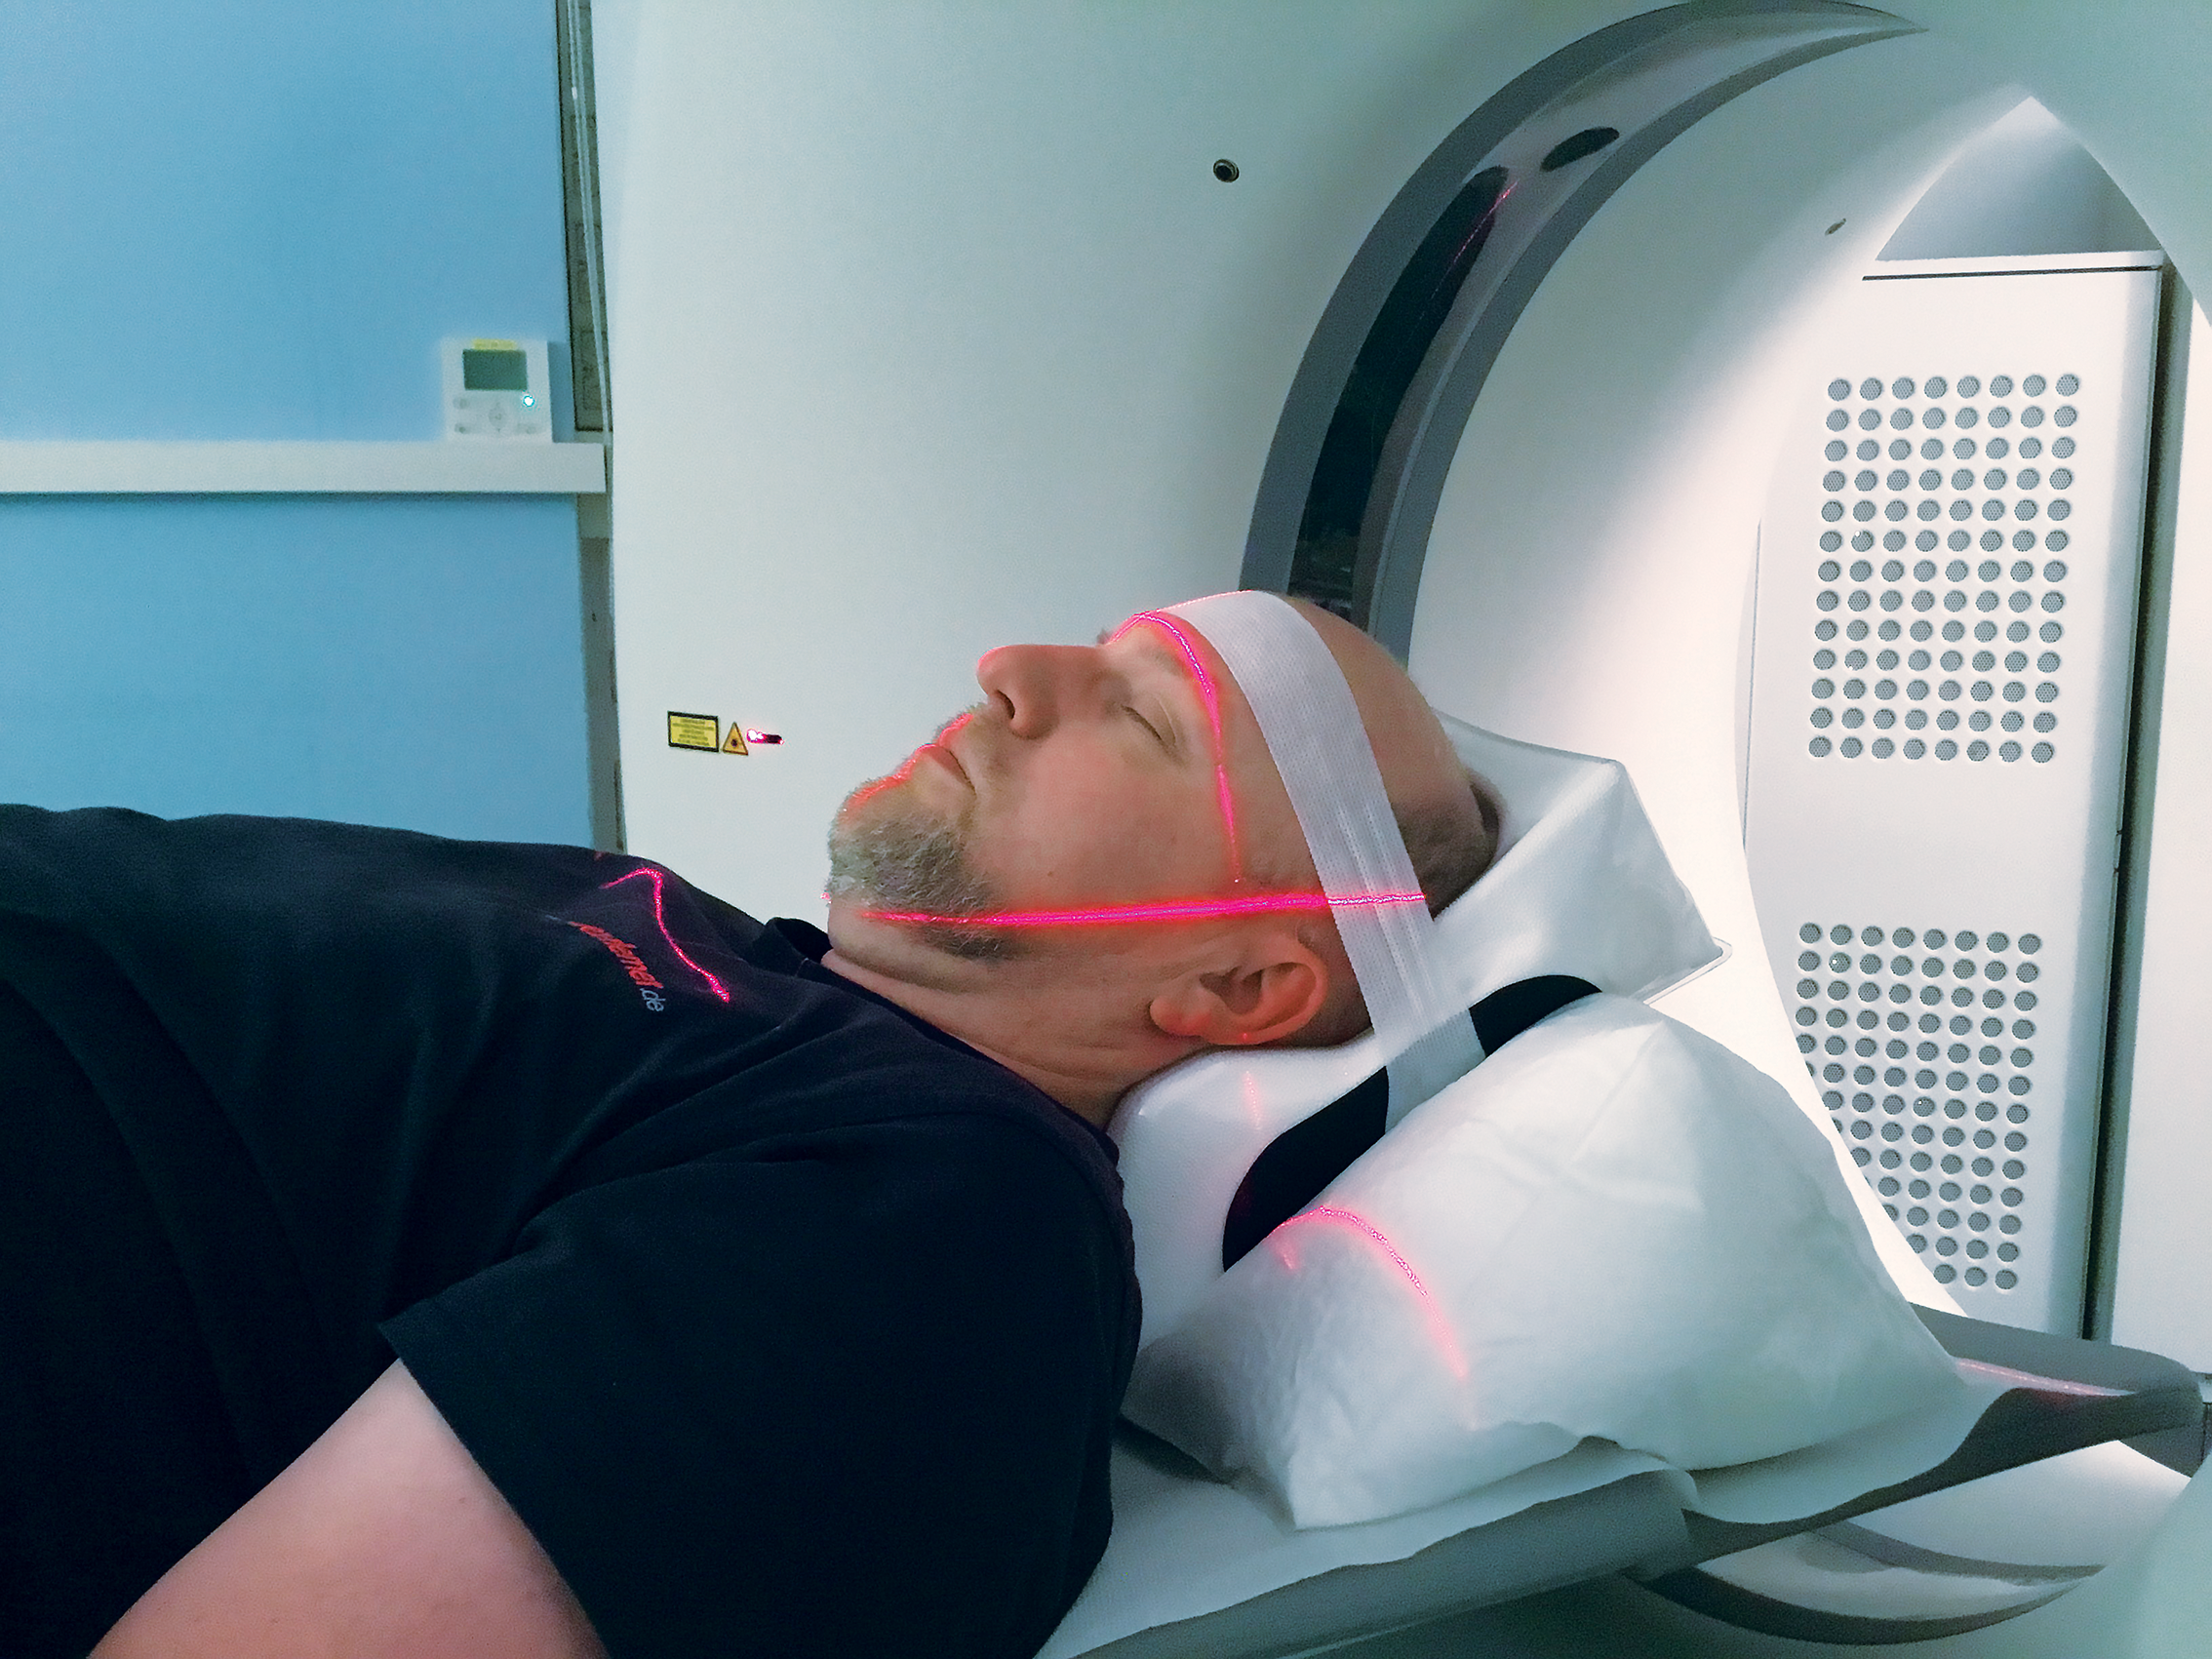 Head immobilization during CT using PearlFit Head/Neck and iFIX